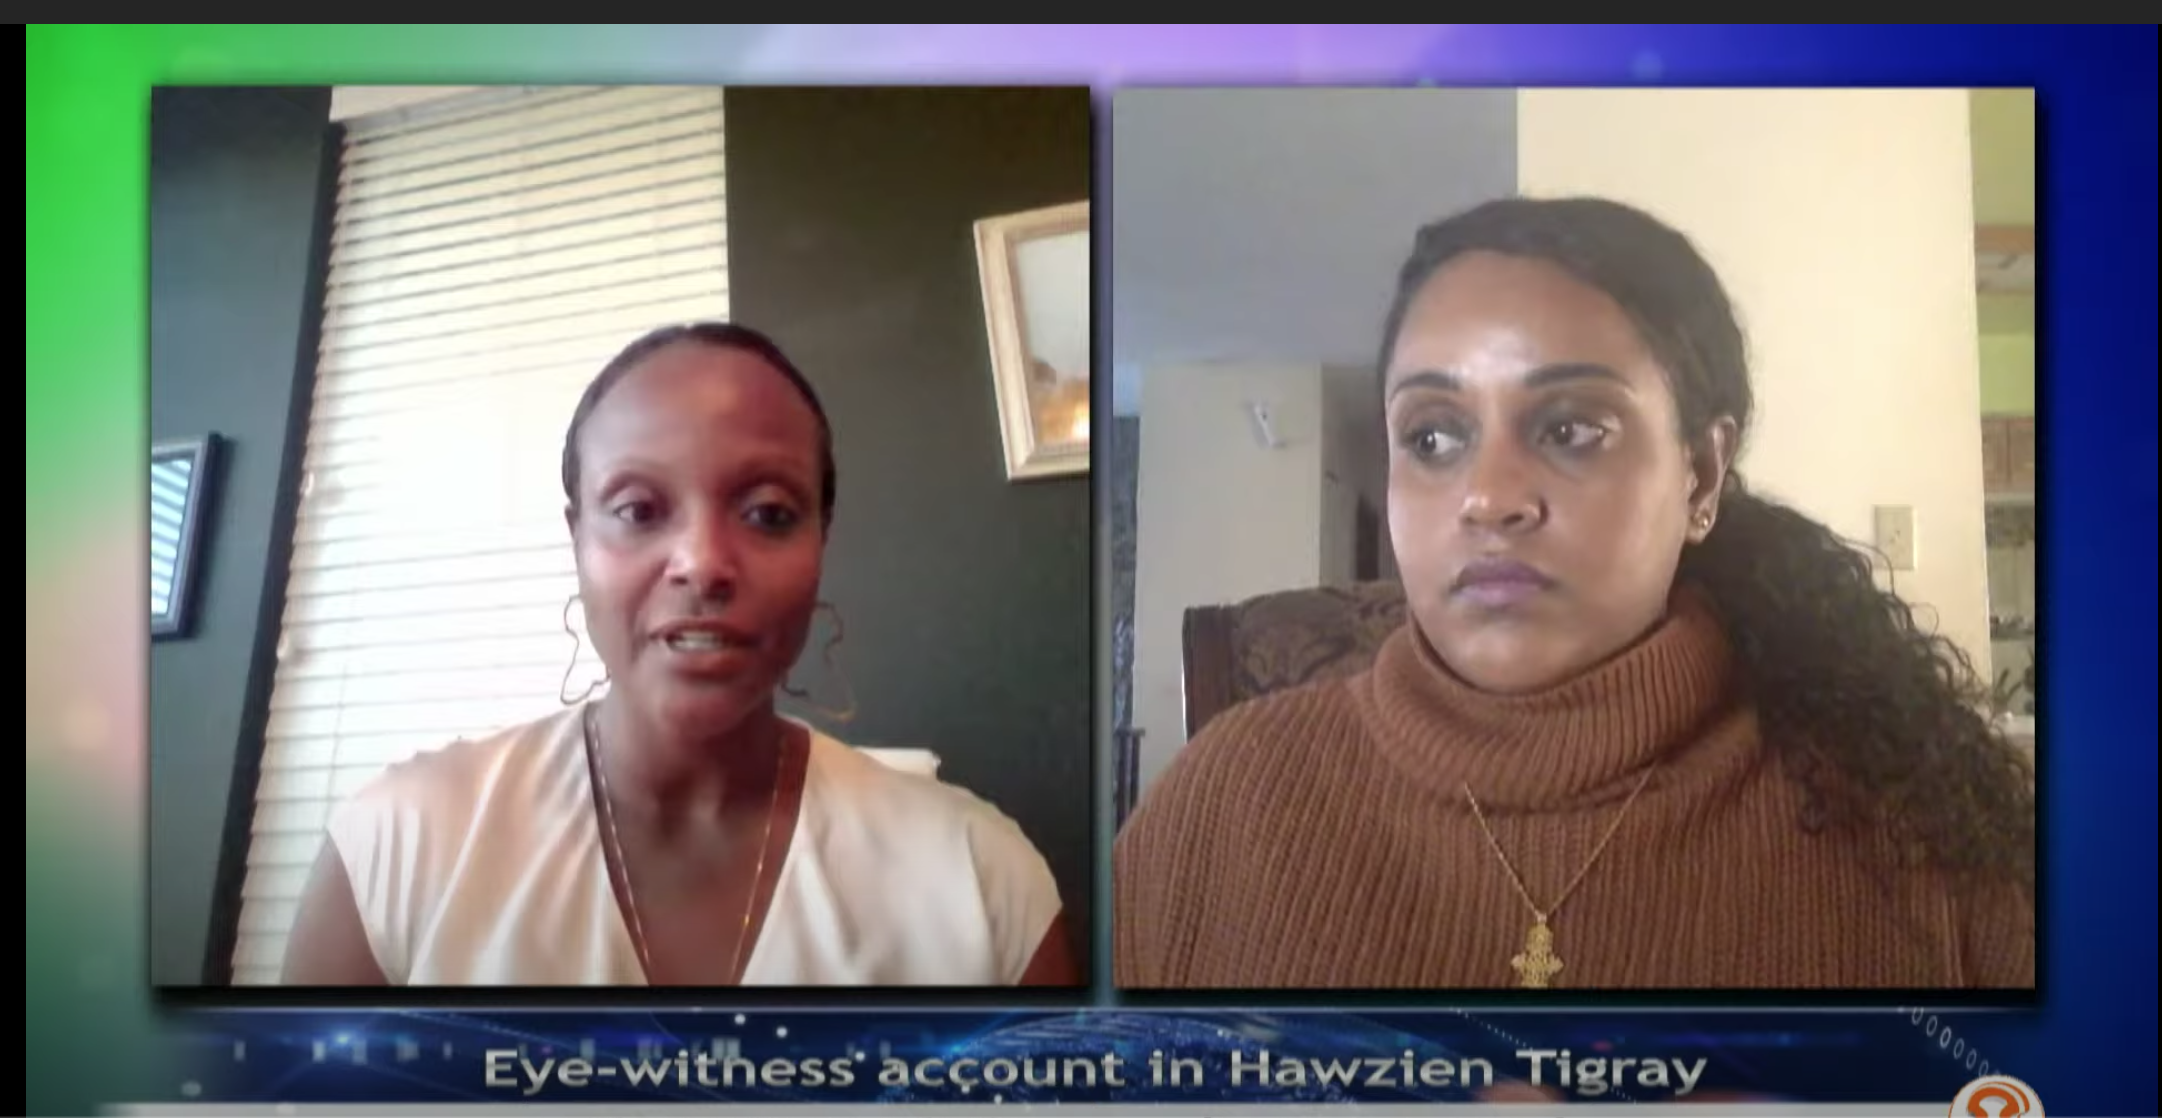 Interview: An Eyewitness Account of the War on Tigray as Witnessed in Hawzien